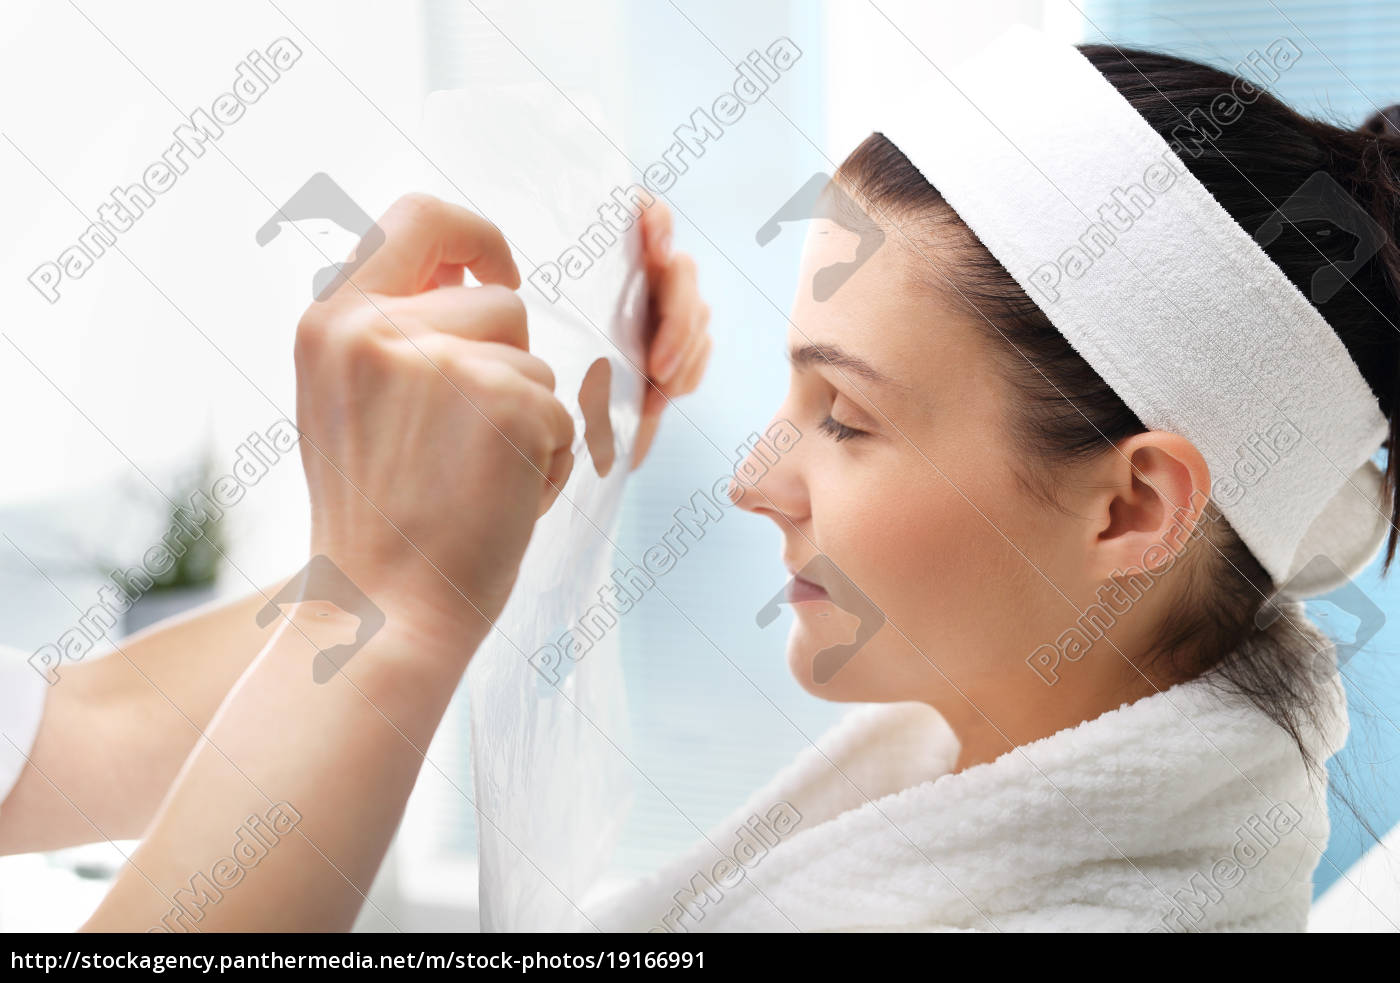 a, woman's, face, during, a, treatment - 19166991